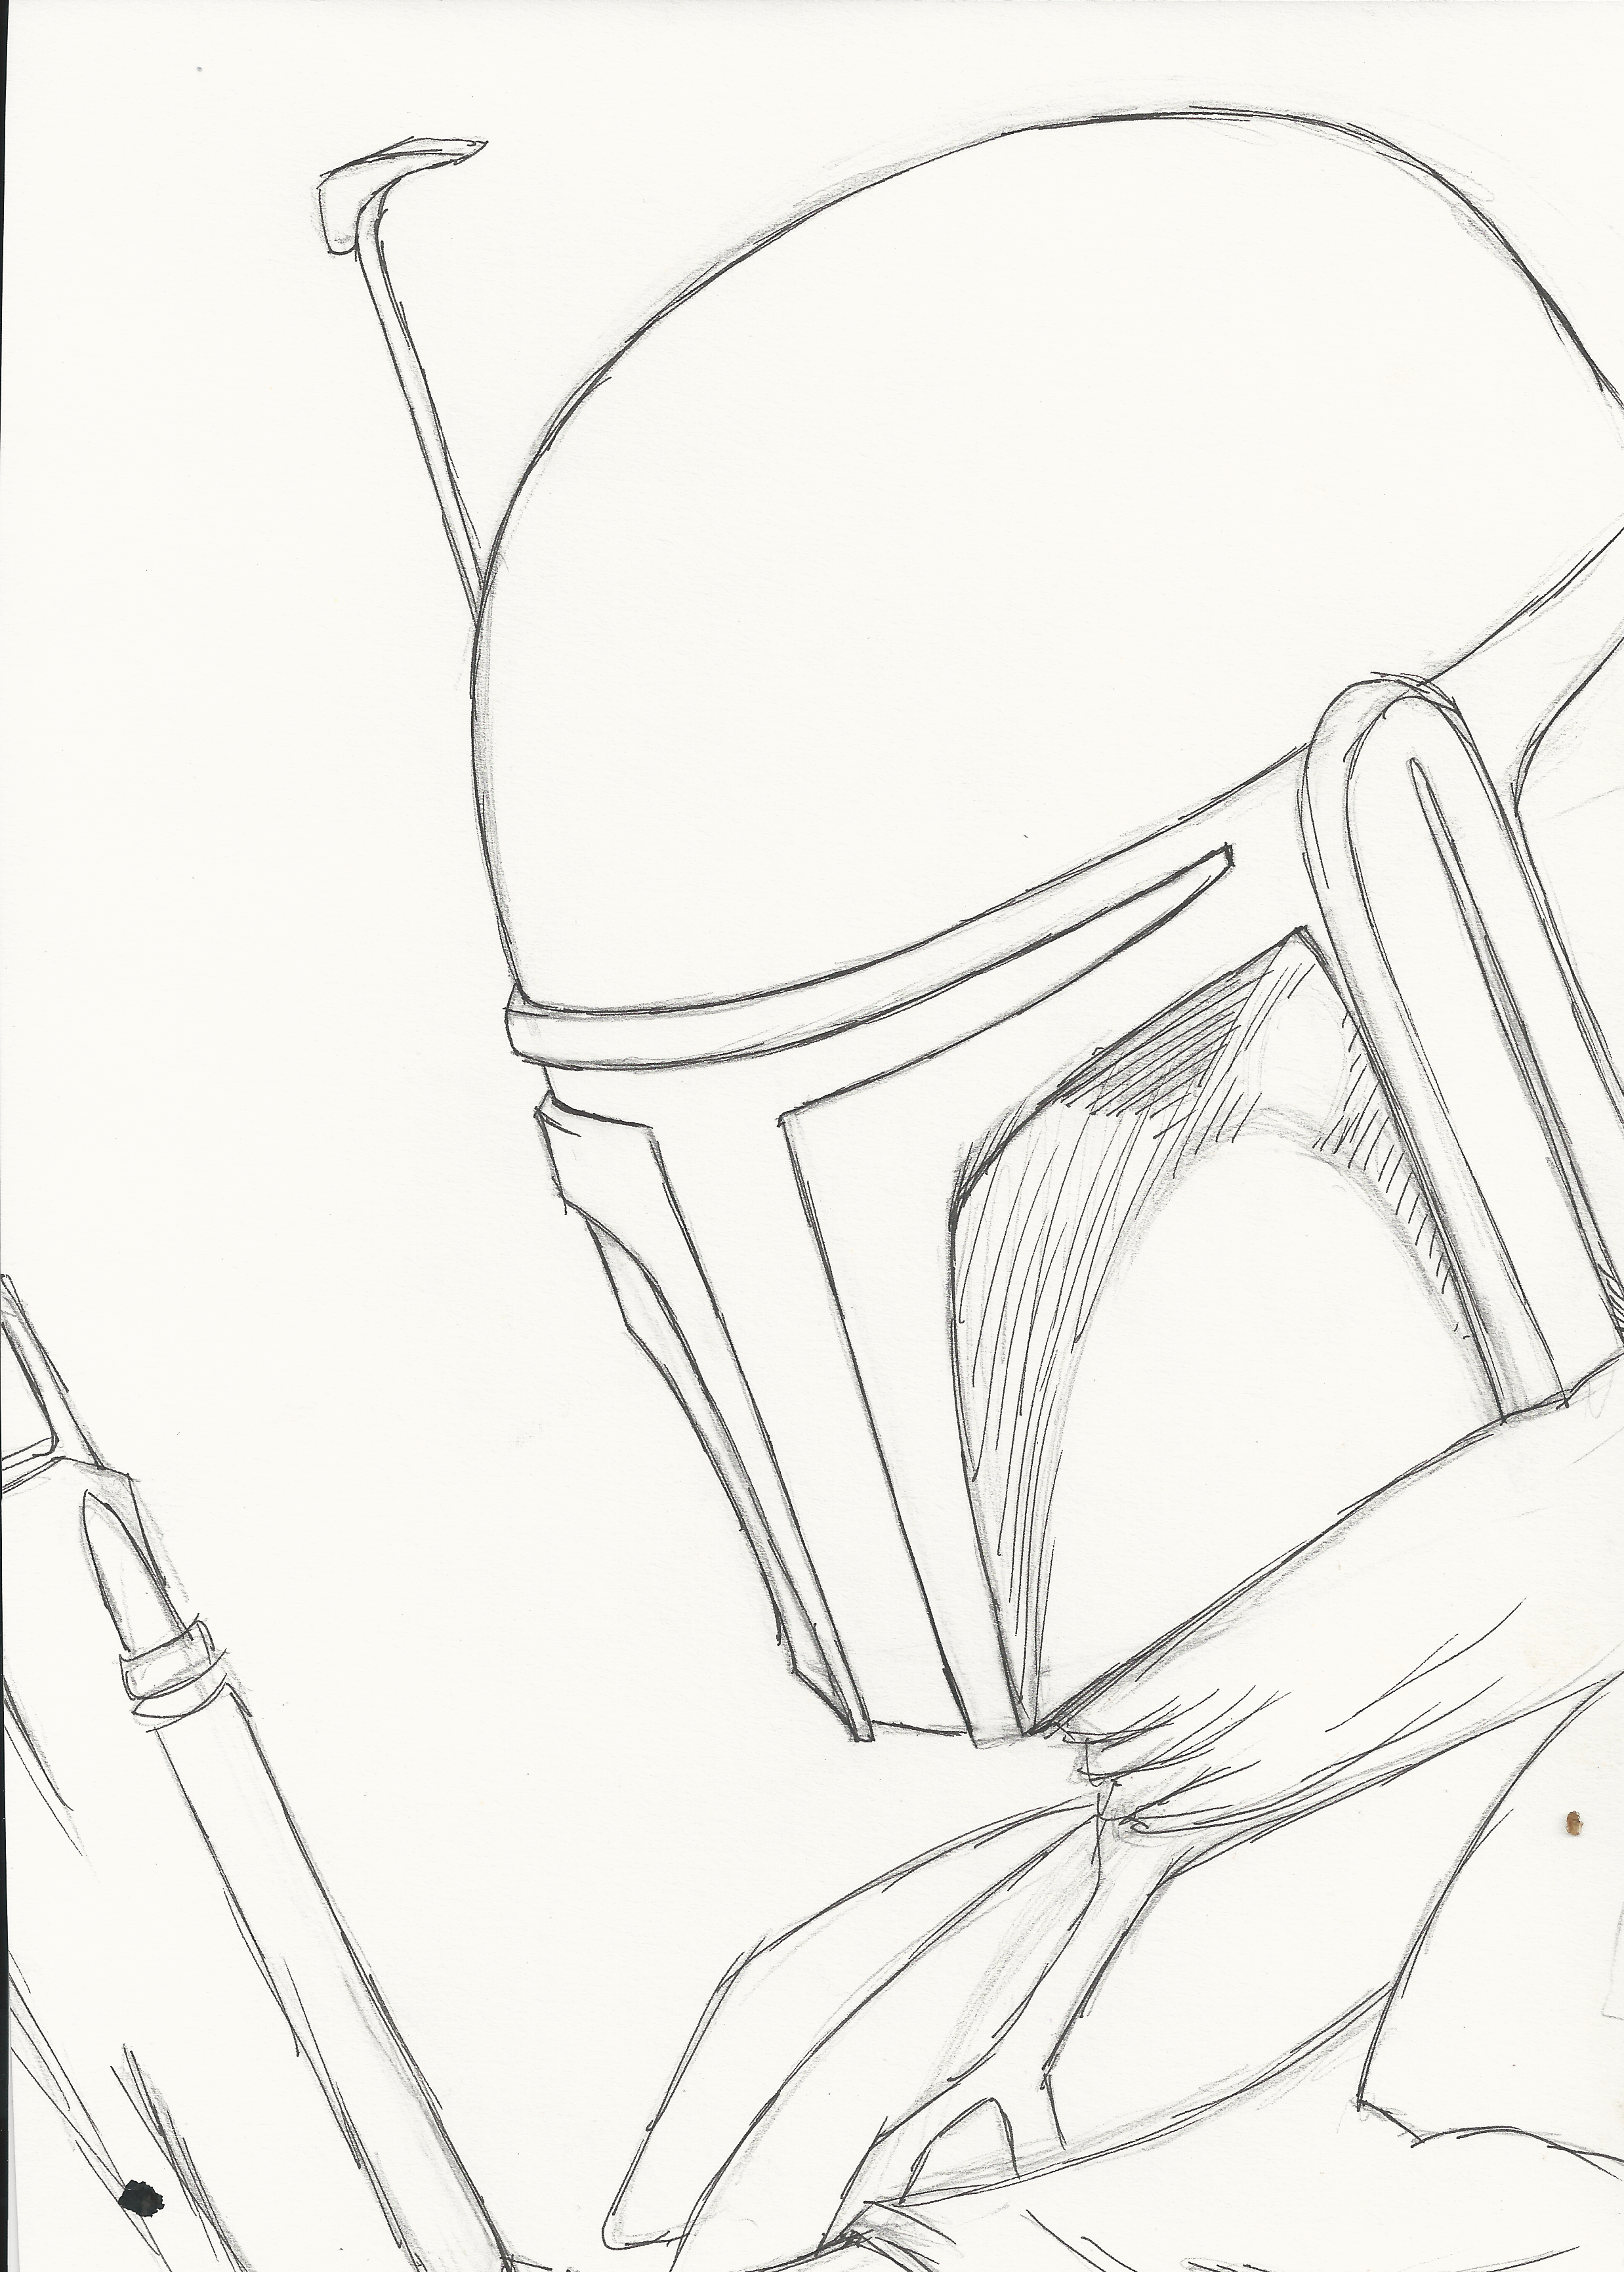 Mandalorian rough sketch by oswulf on deviantart mandalorian rough sketch by oswulf pronofoot35fo Images